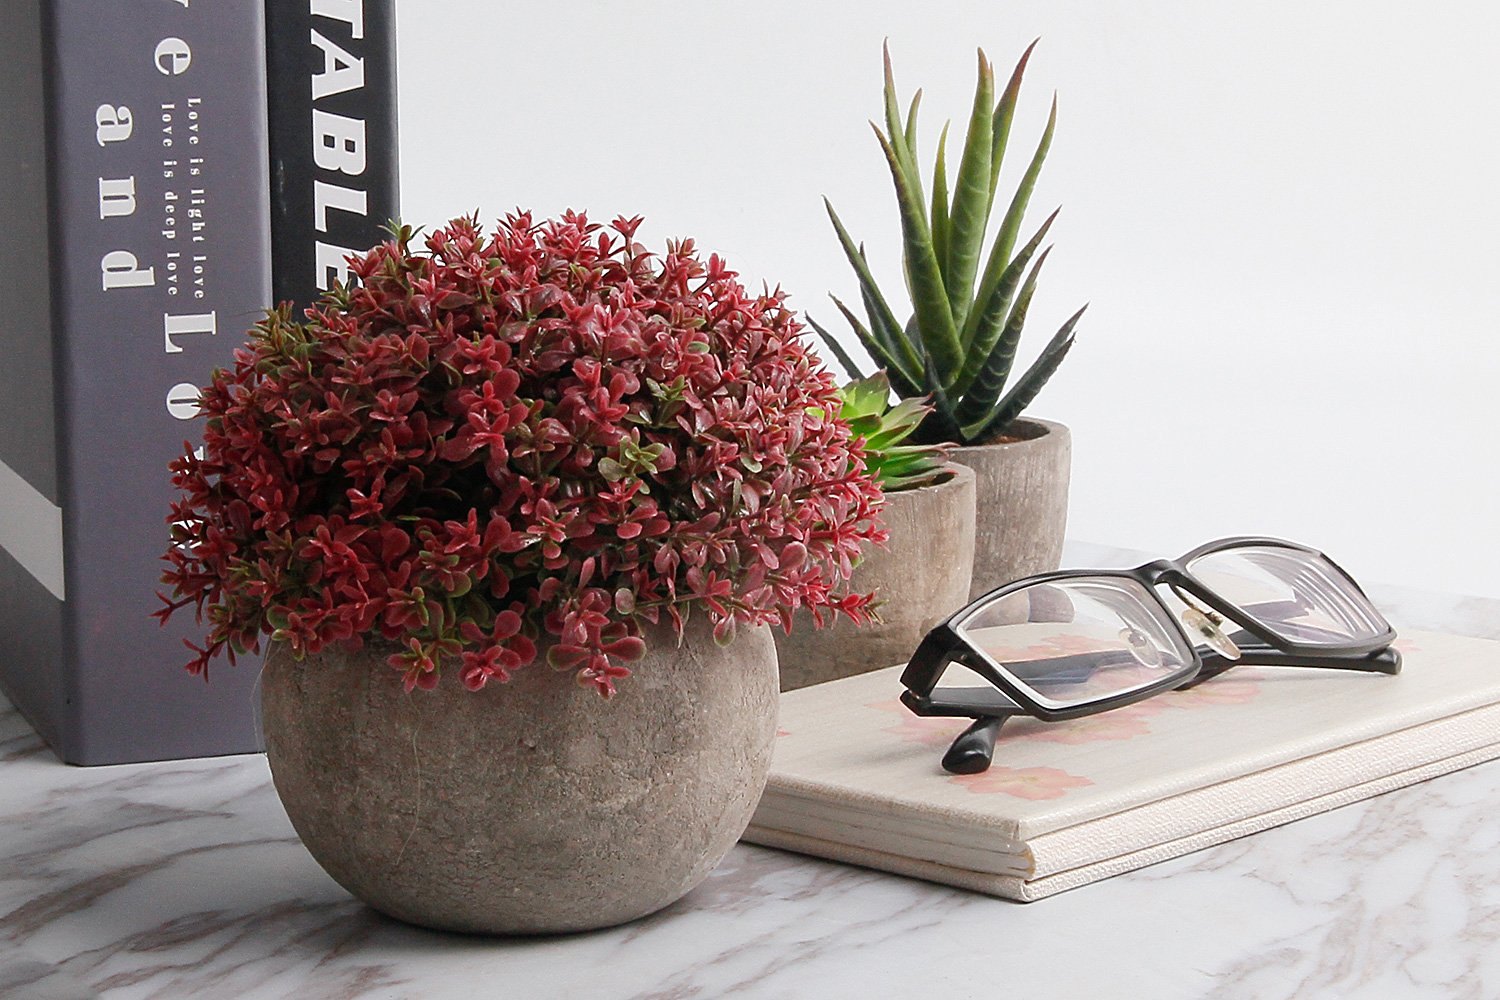 T4u Plastic Artificial Plants Potted Decorative Lifelike Love Flower For Home Office Decor Pack Of 3